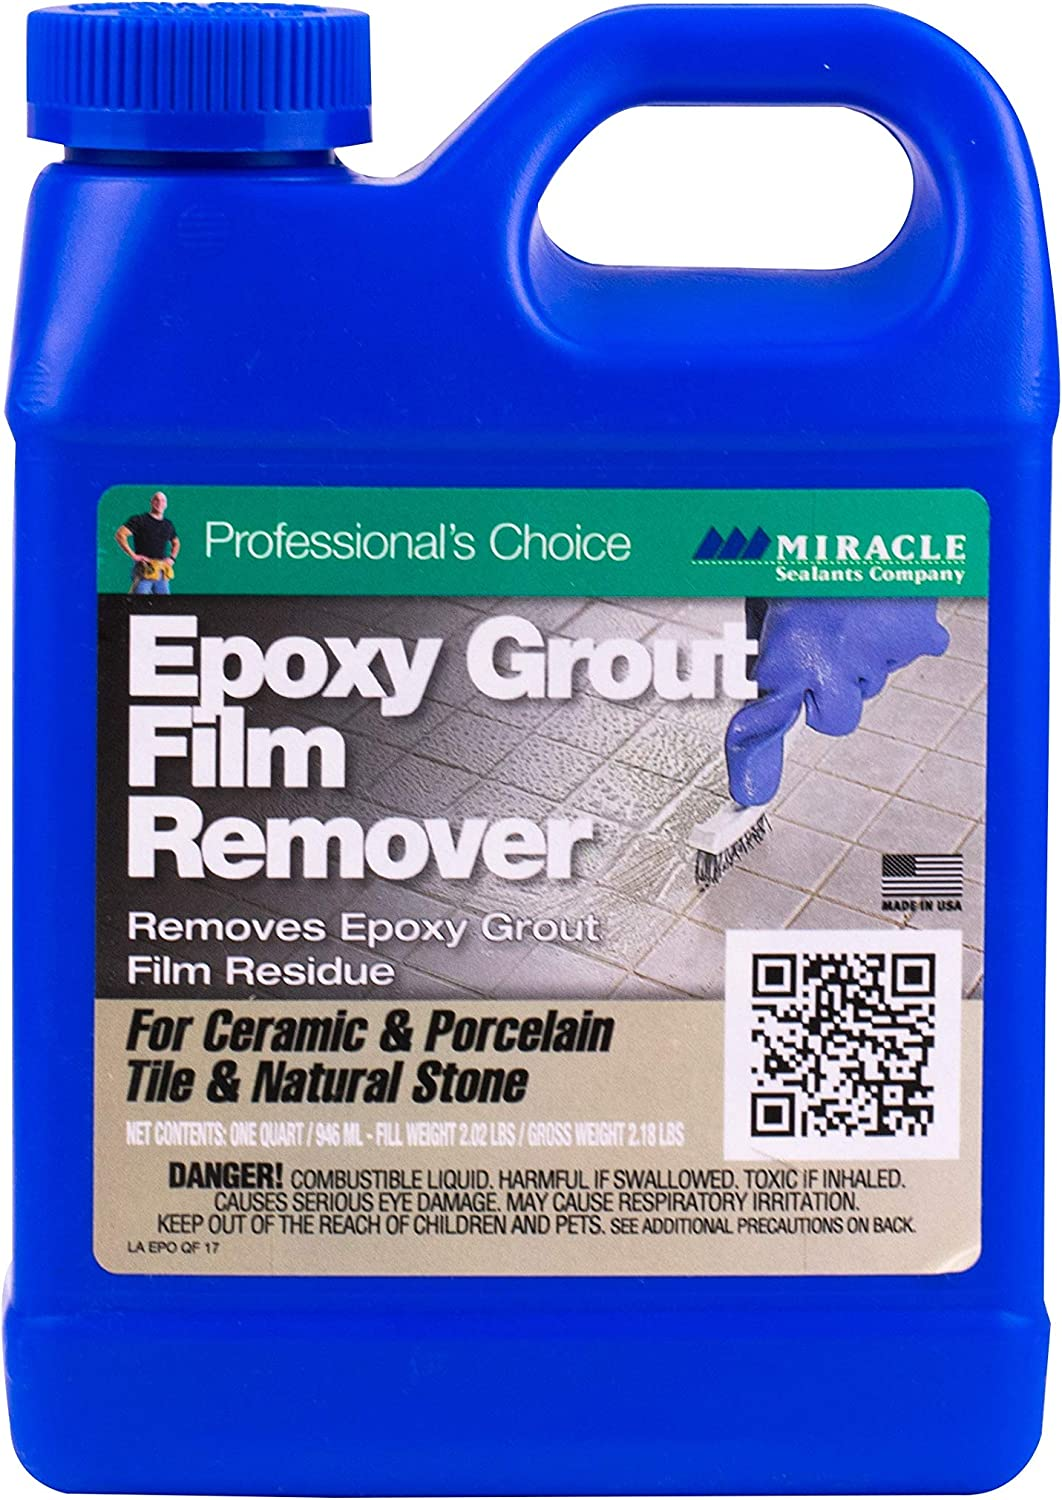 Miracle Sealants Eporemqt6 Epoxy Grout Film Remover Cleaners Quart Tile Cleaners Amazon Com